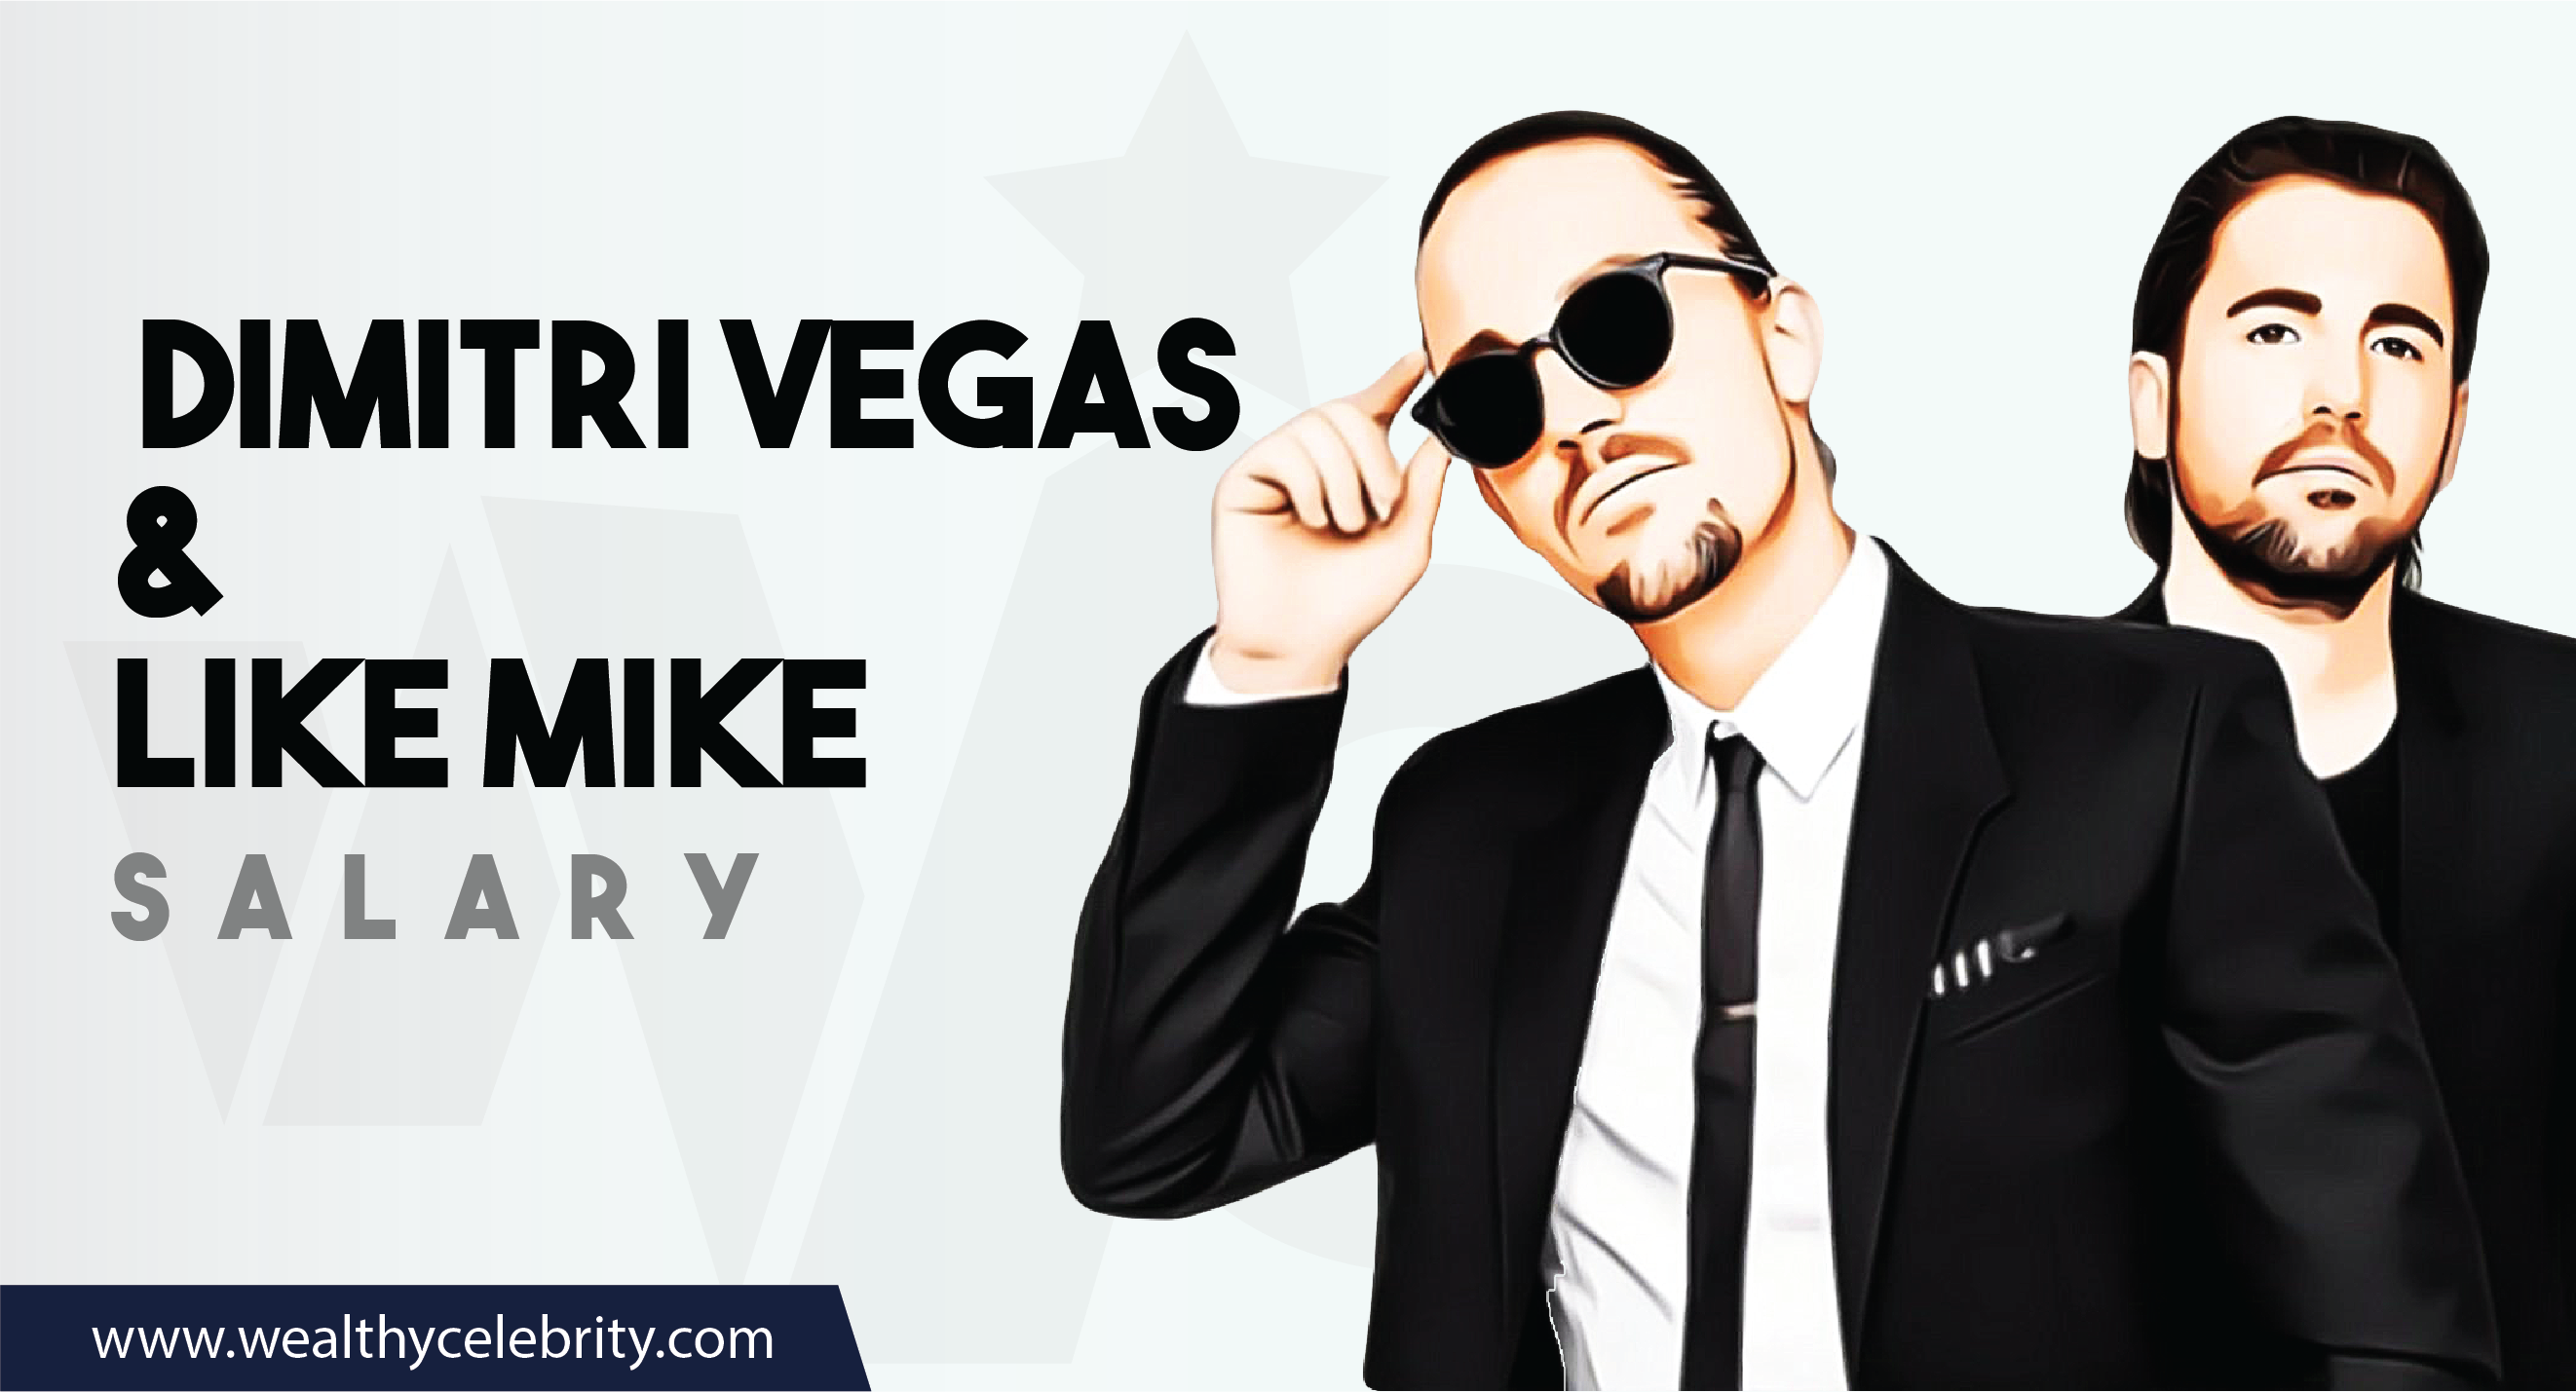 Dimitri Vegas and Like Mike DJ - Current Salary Net Worth